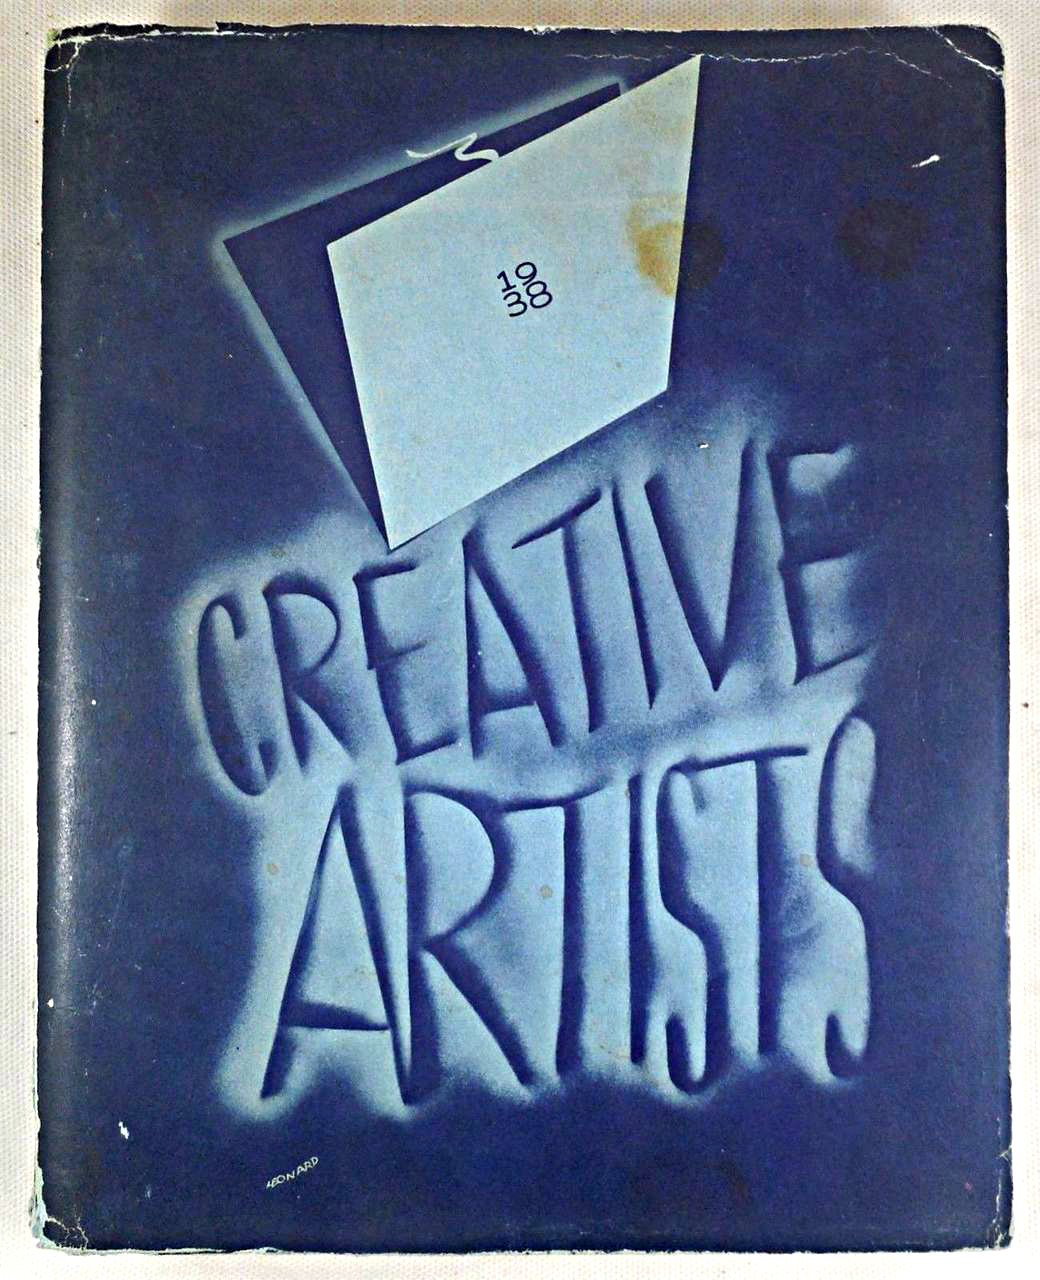 CREATIVE ARTISTS, by Sackett & Wilhelms Lithographing Corp  - 1938